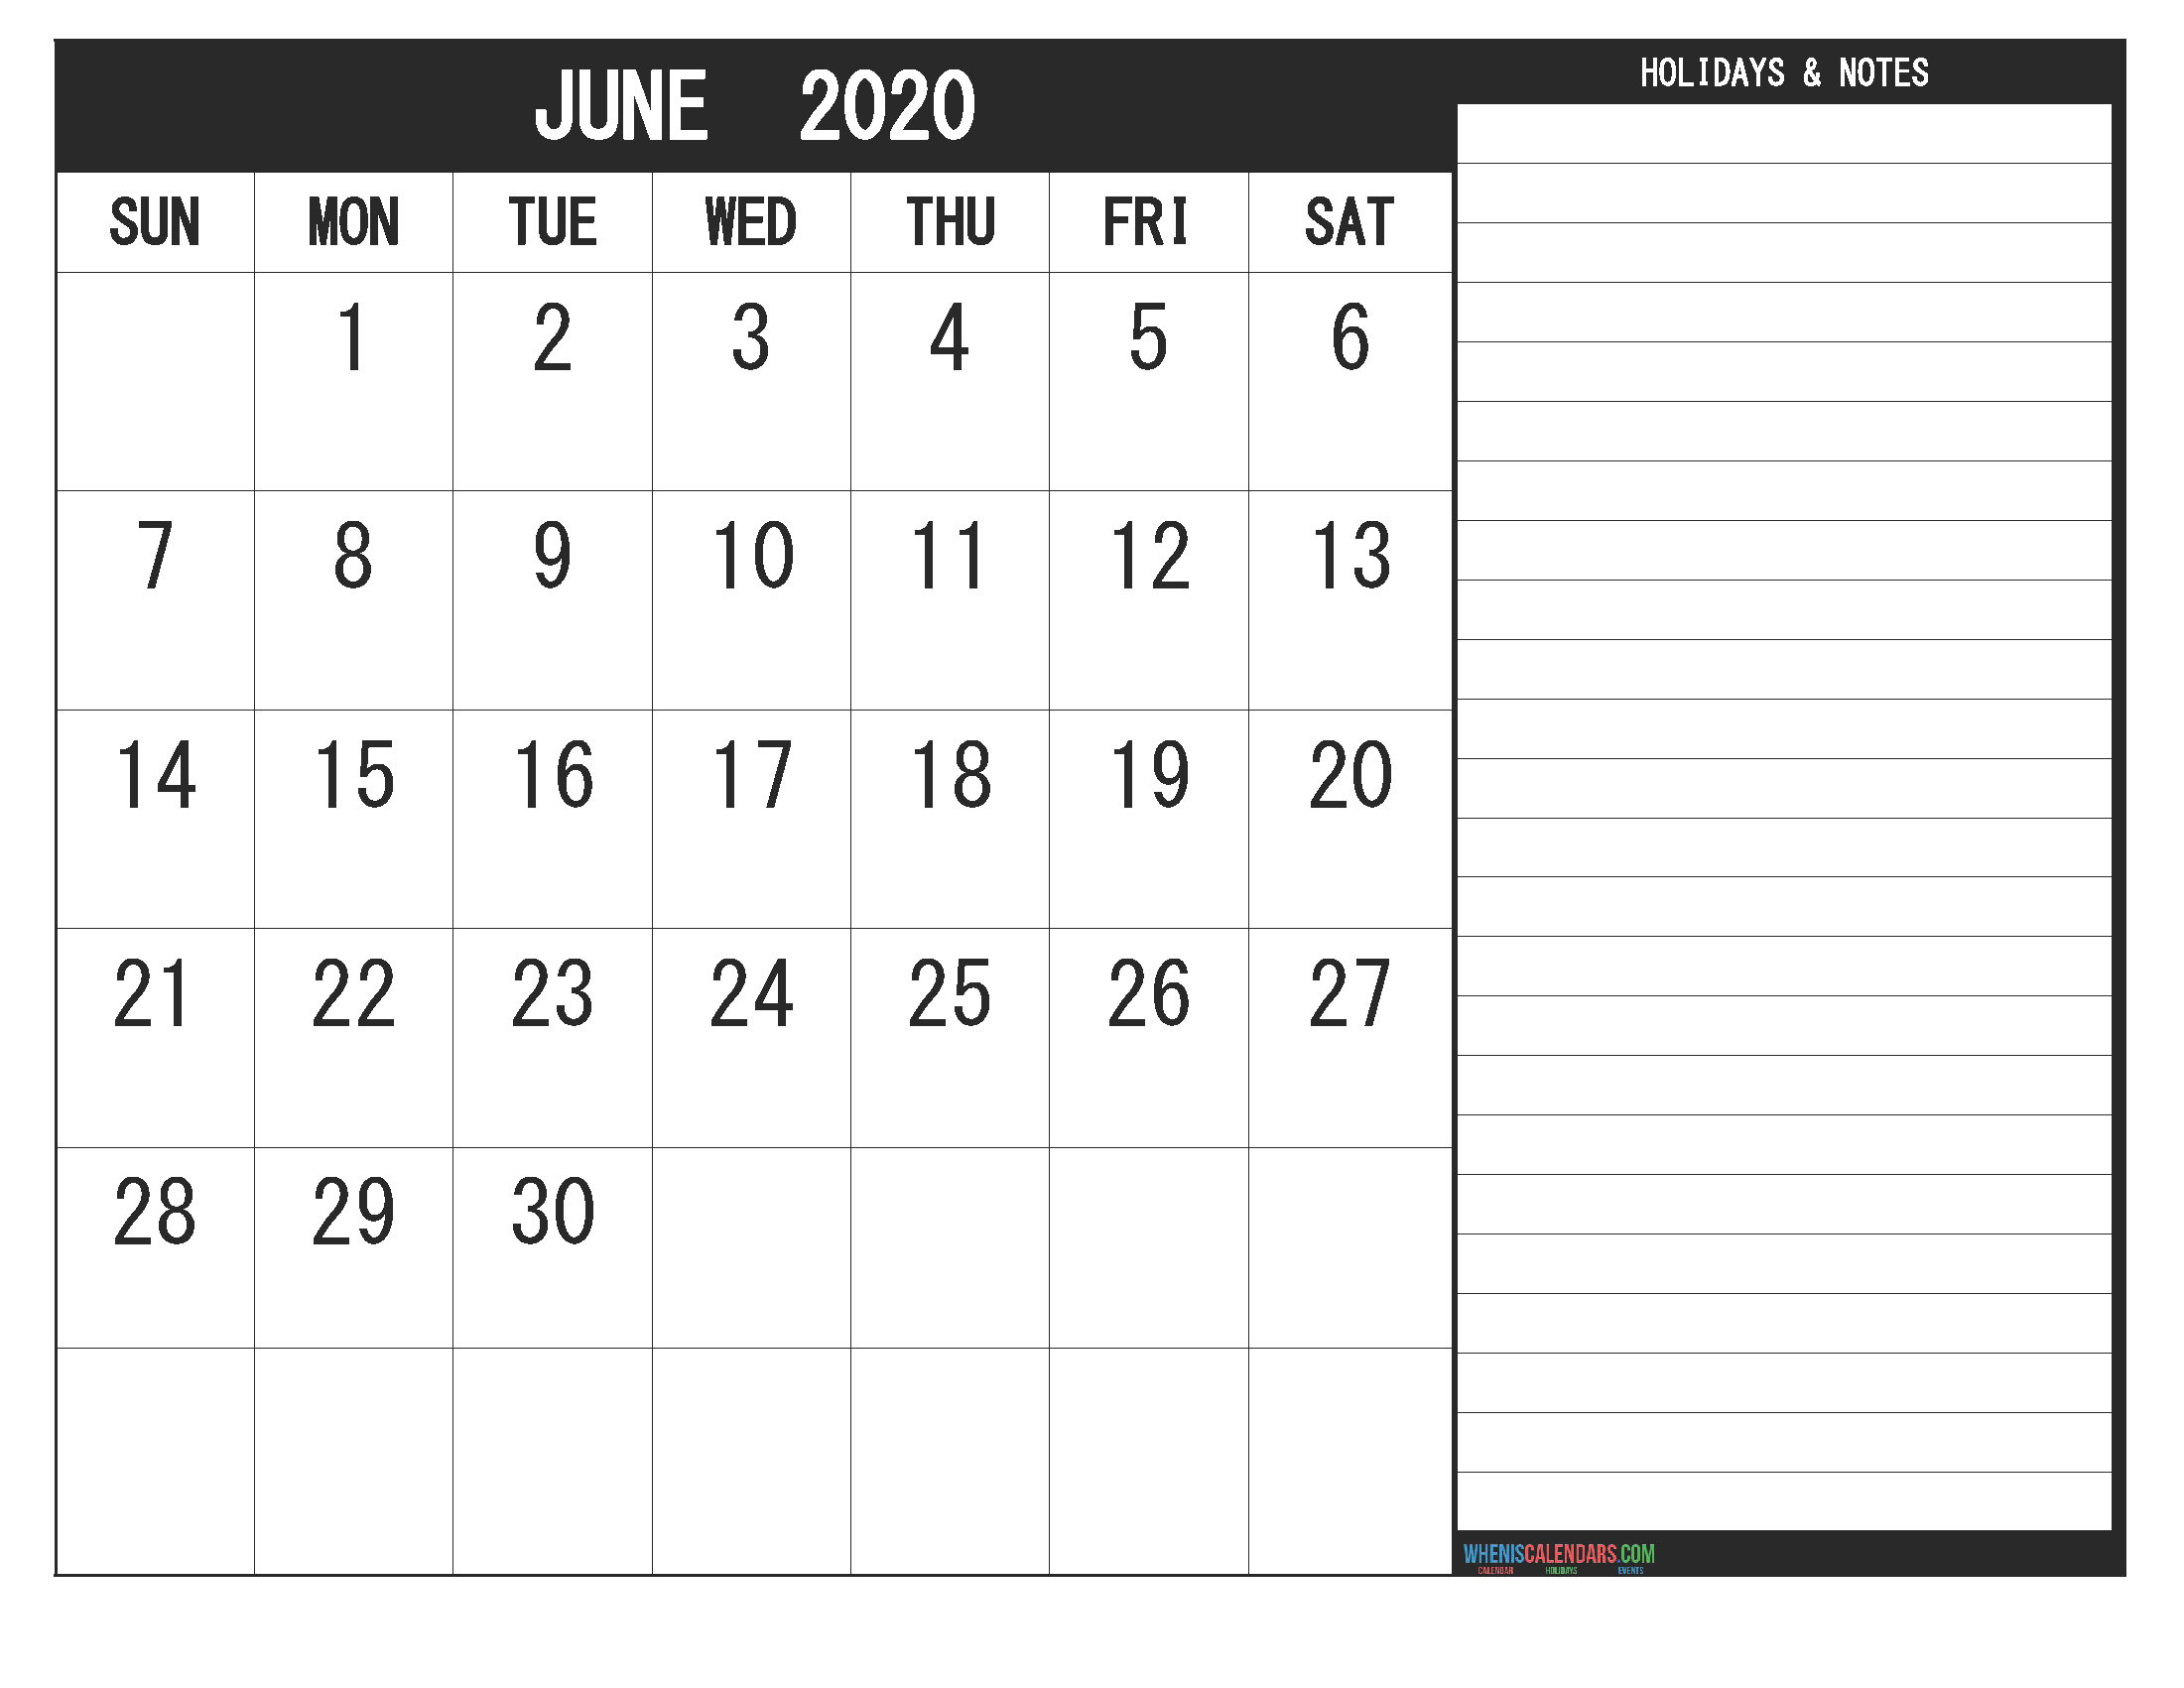 Free Printable Monthly Calendar 2020 June with Holidays